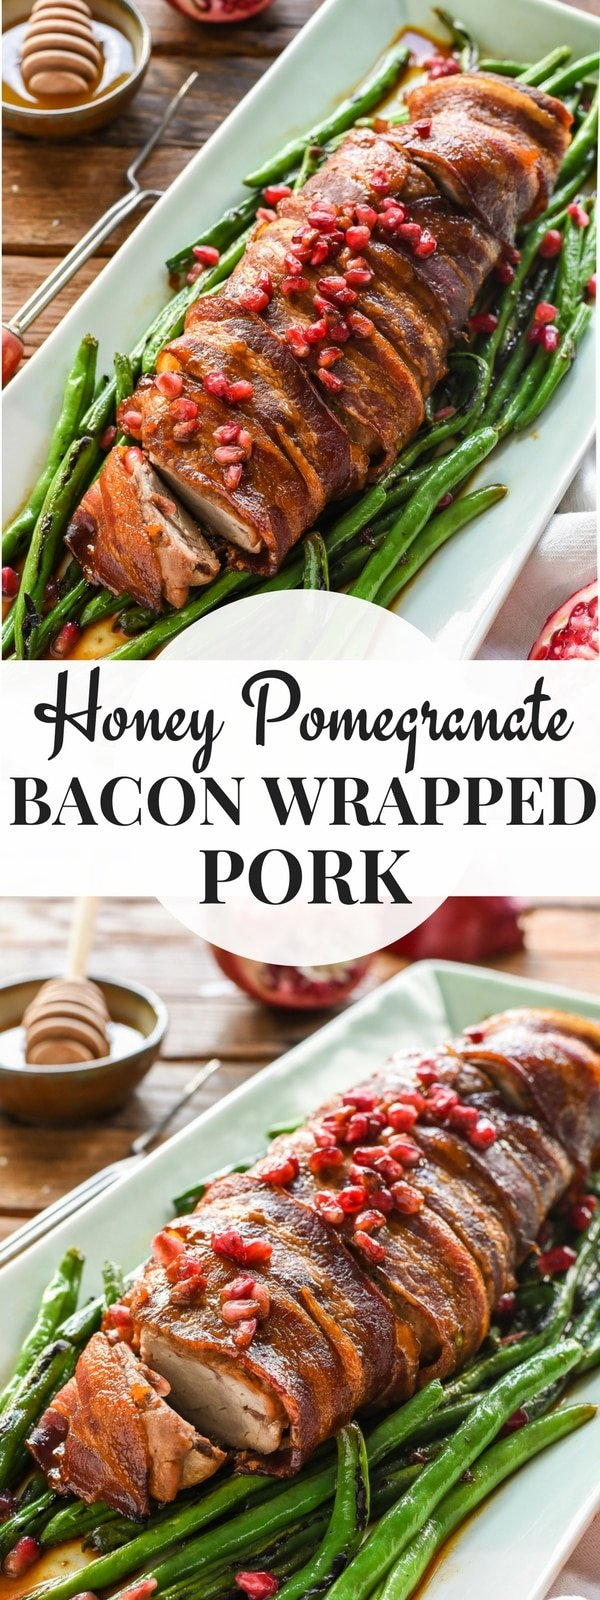 This Bacon Wrapped Pork Tenderloin is glazed with a simple pomegranate honey sauce for an amazing special occasion dinner!